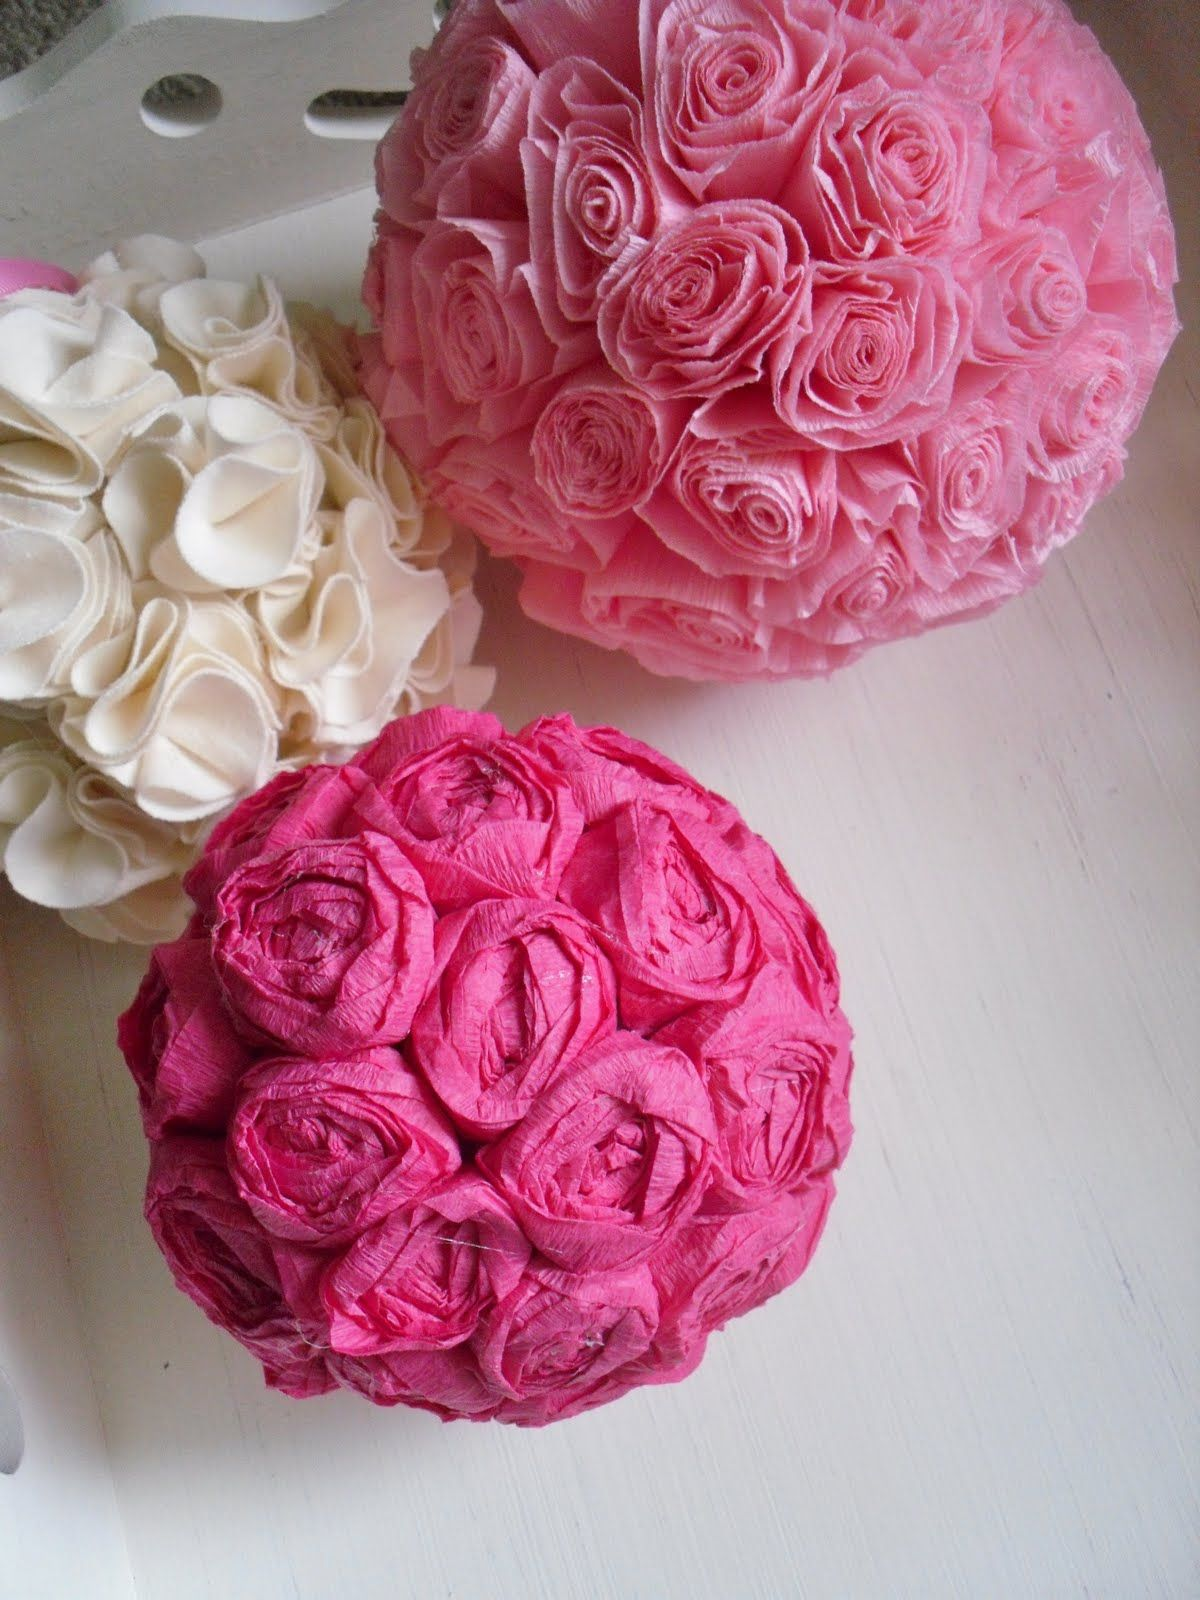 Pin by brittani beegle on roses 1st birthday pinterest explore flower ball diy flower and more mightylinksfo